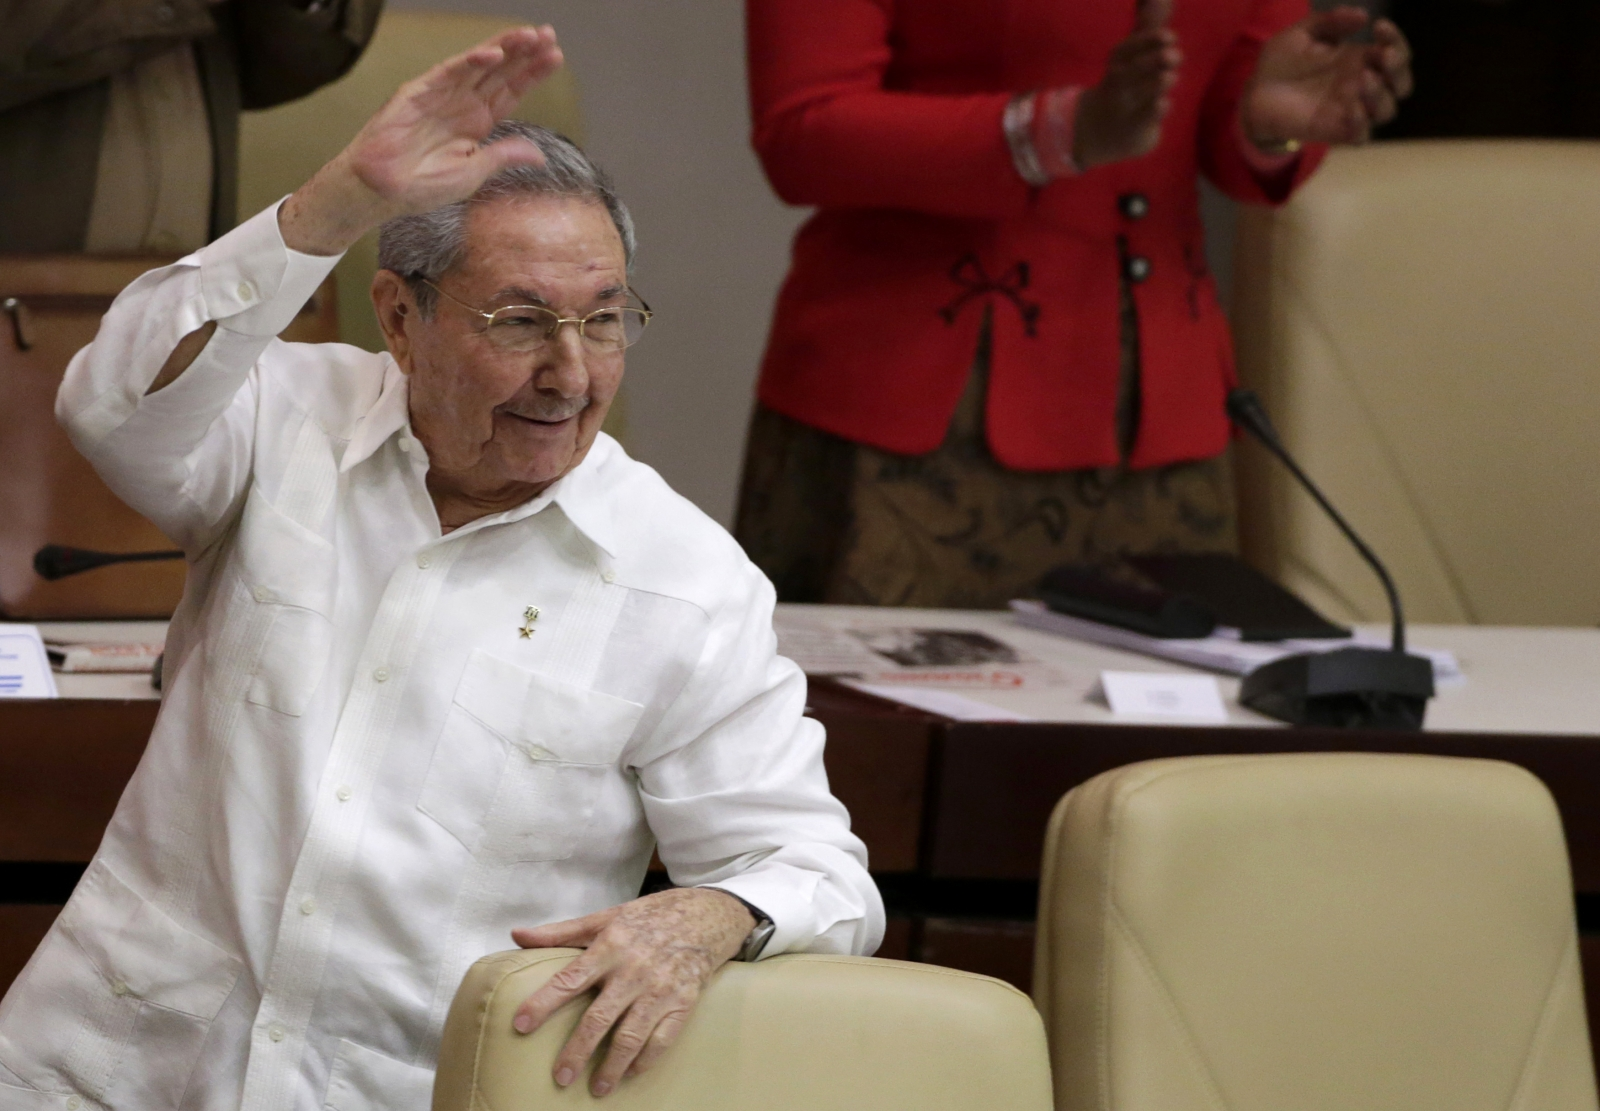 Cuban president Raul Castro responds to Obama's move in US-Cuba relations